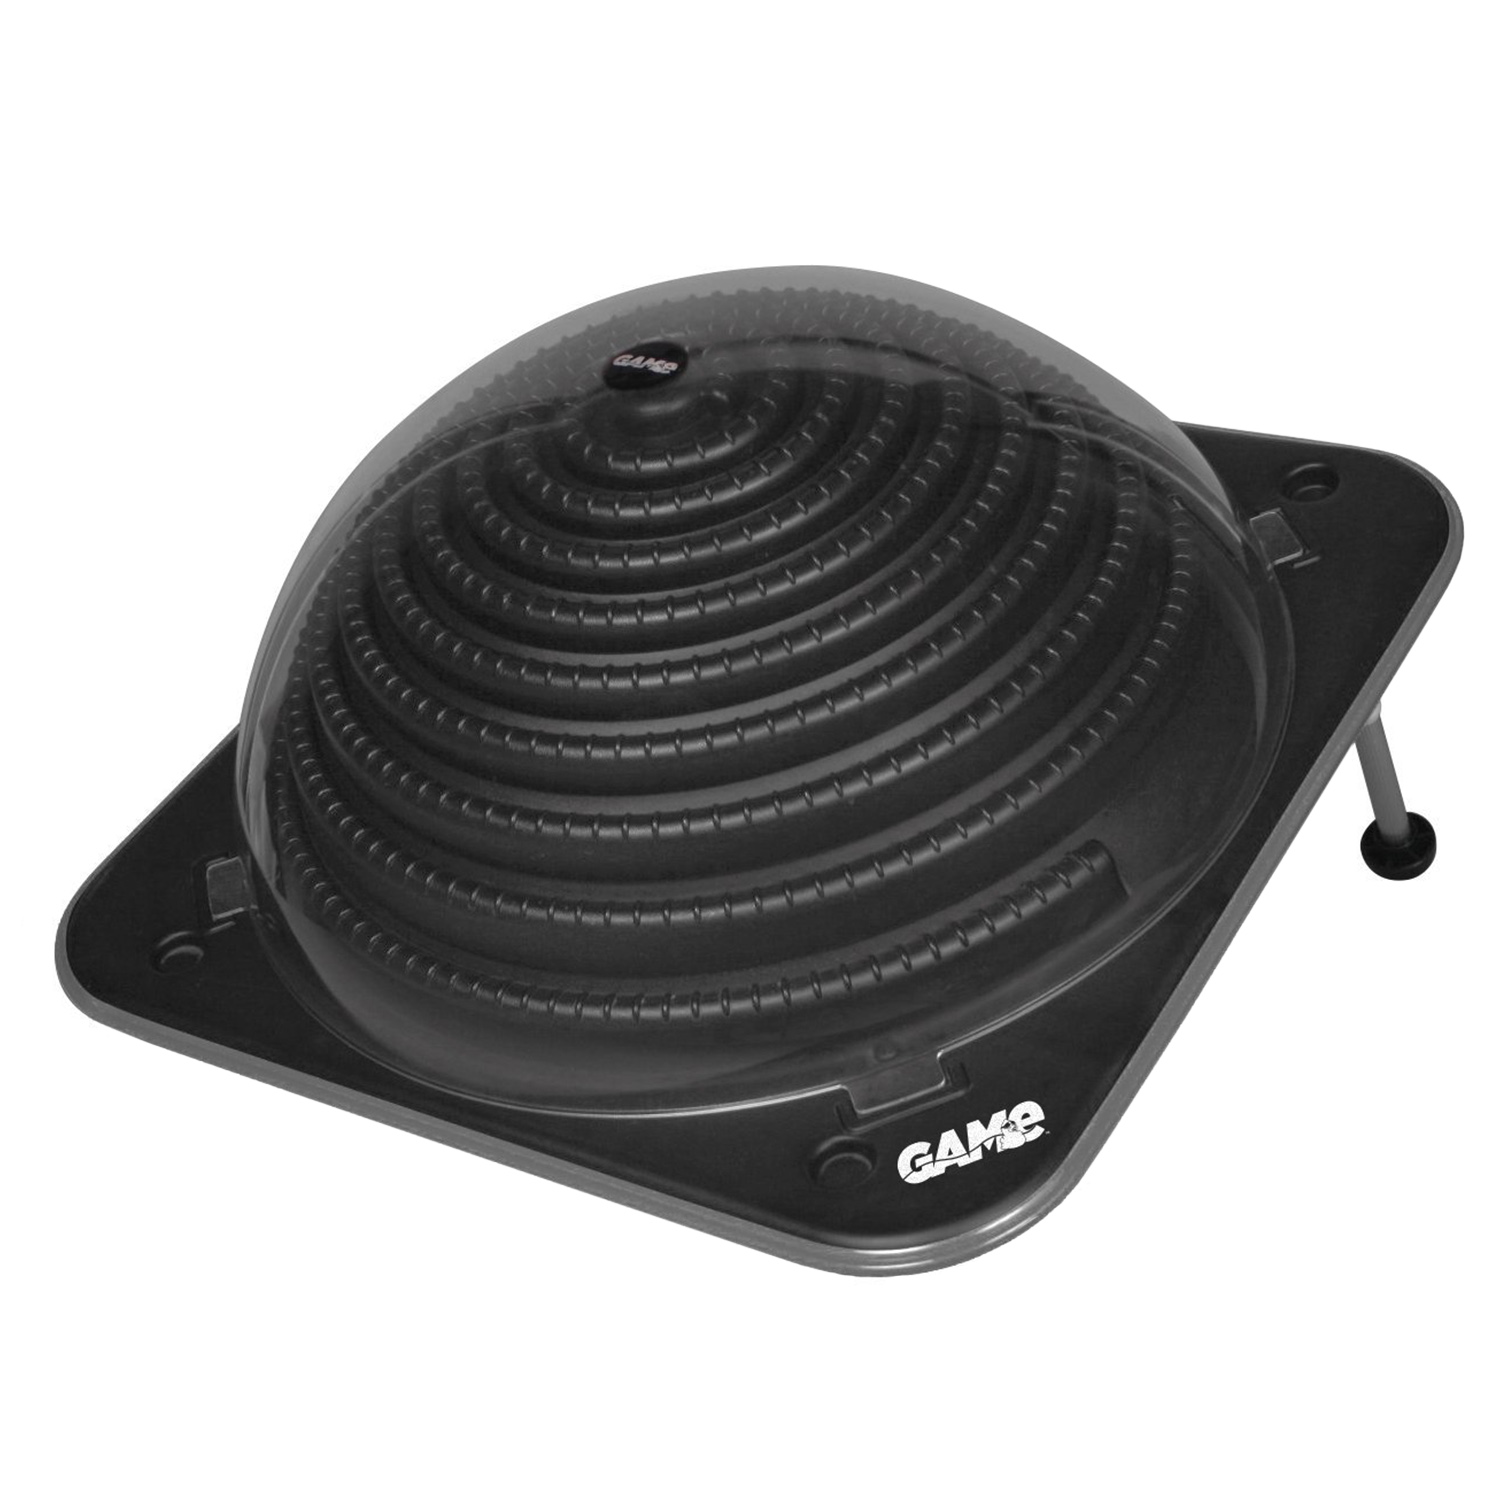 GAME SolarPRO Contour Solar Powered Dome Swimming Pool Water Heater | 4714